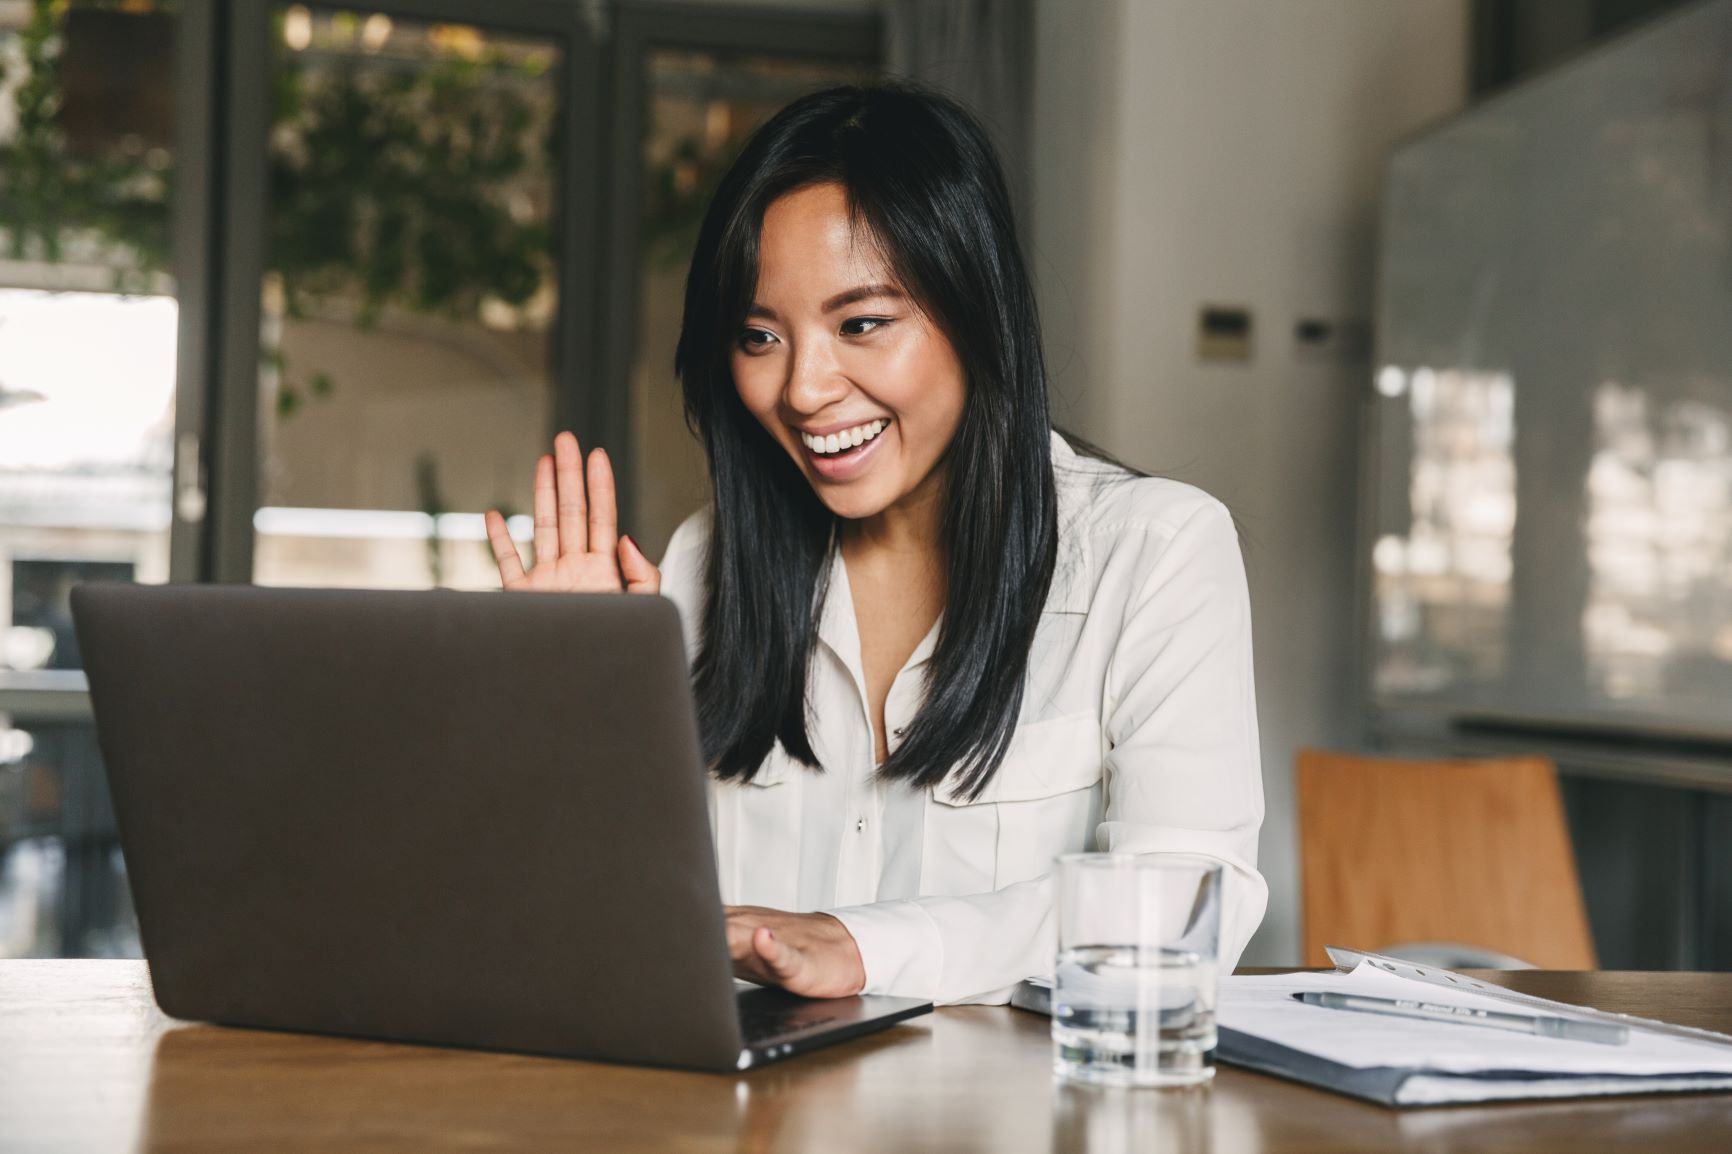 Asian female smiling and waving at laptop during video call